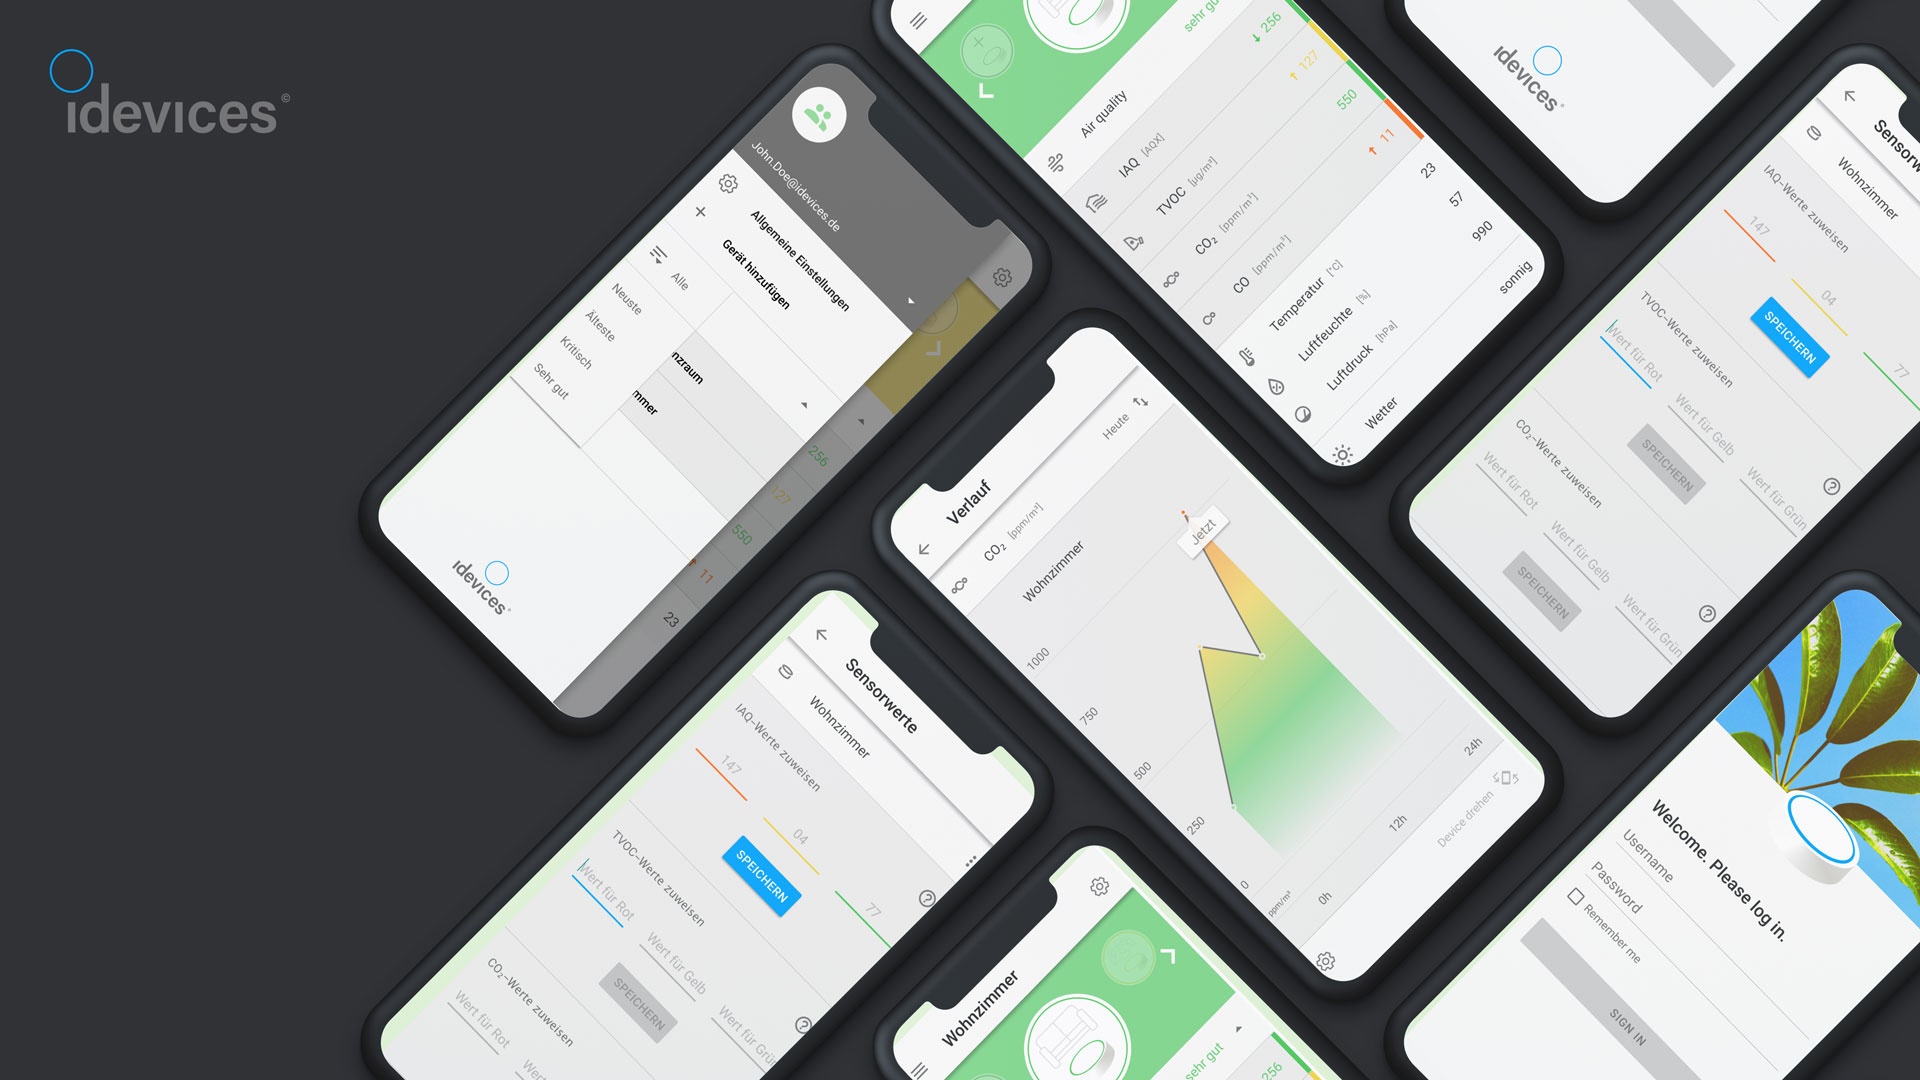 idevices_MOCKUP_Phones_2